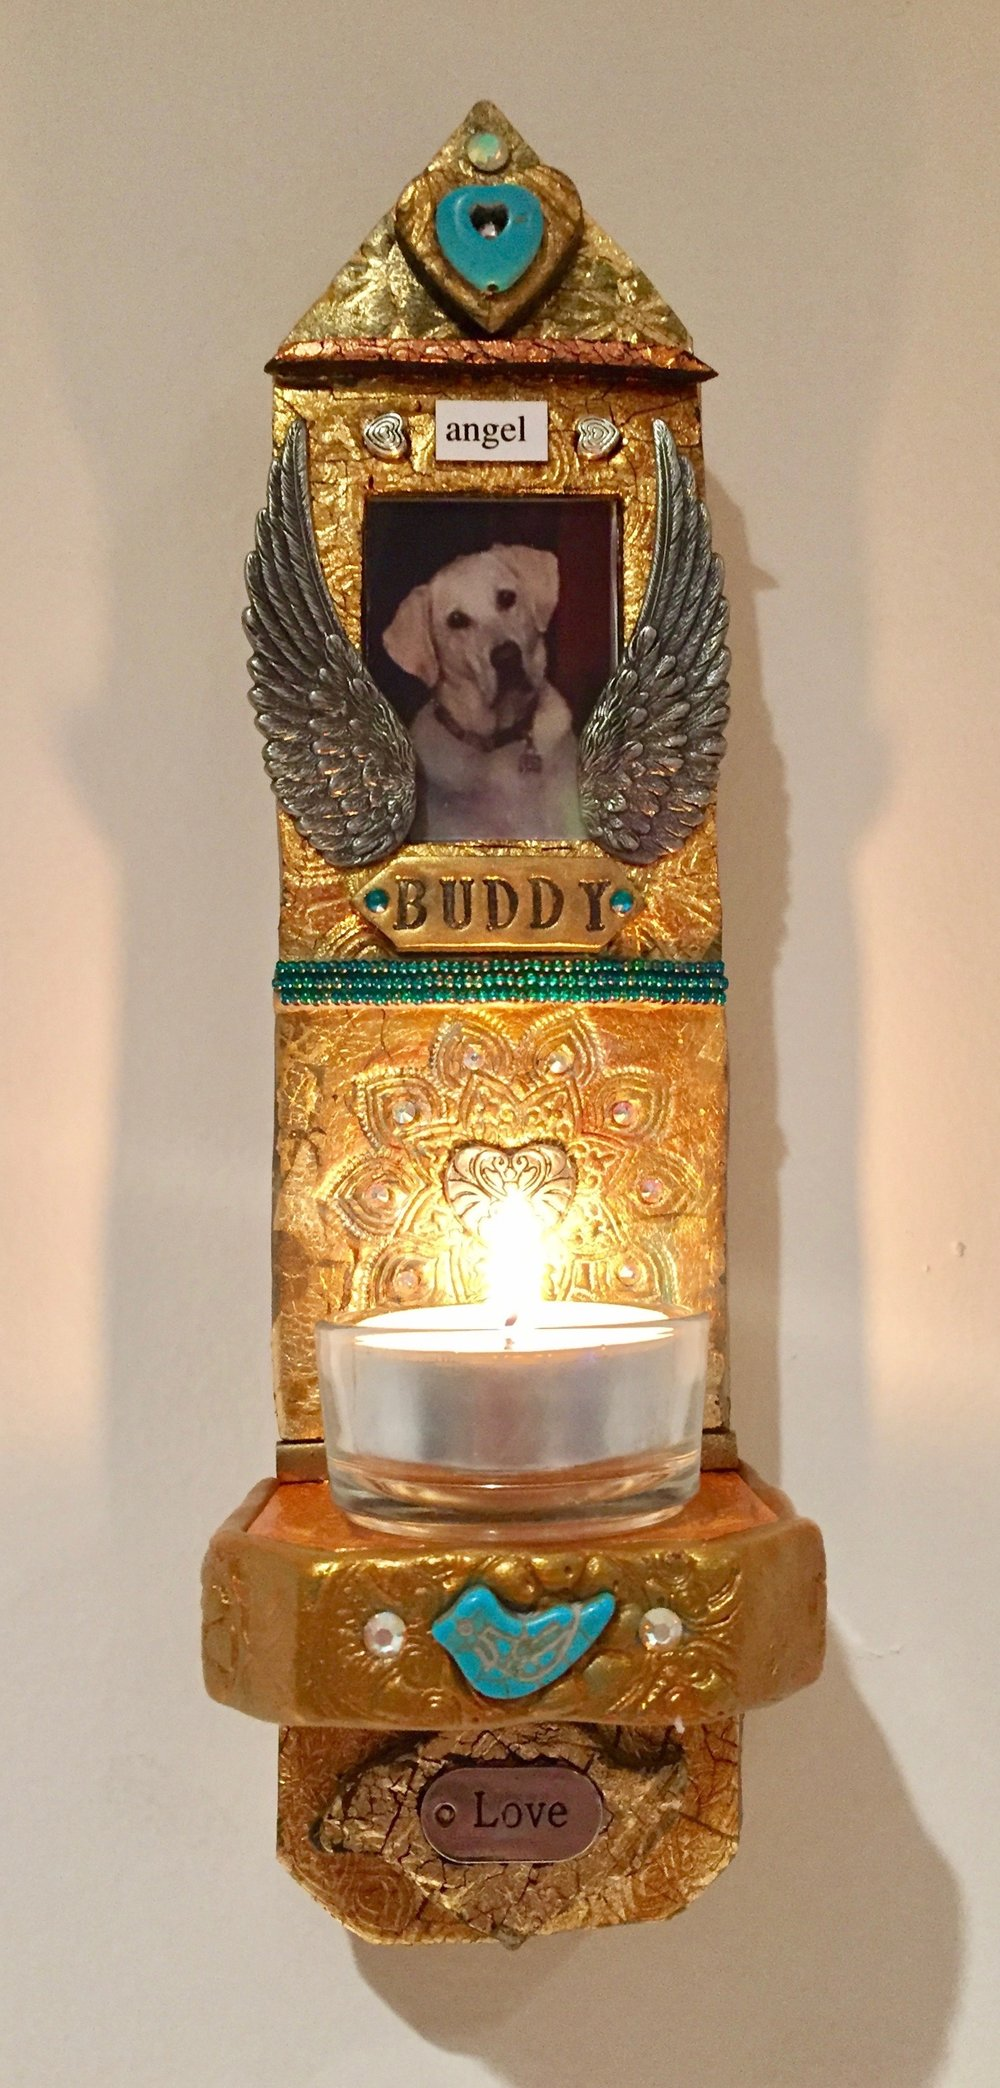 Buddy, Pet Memorial